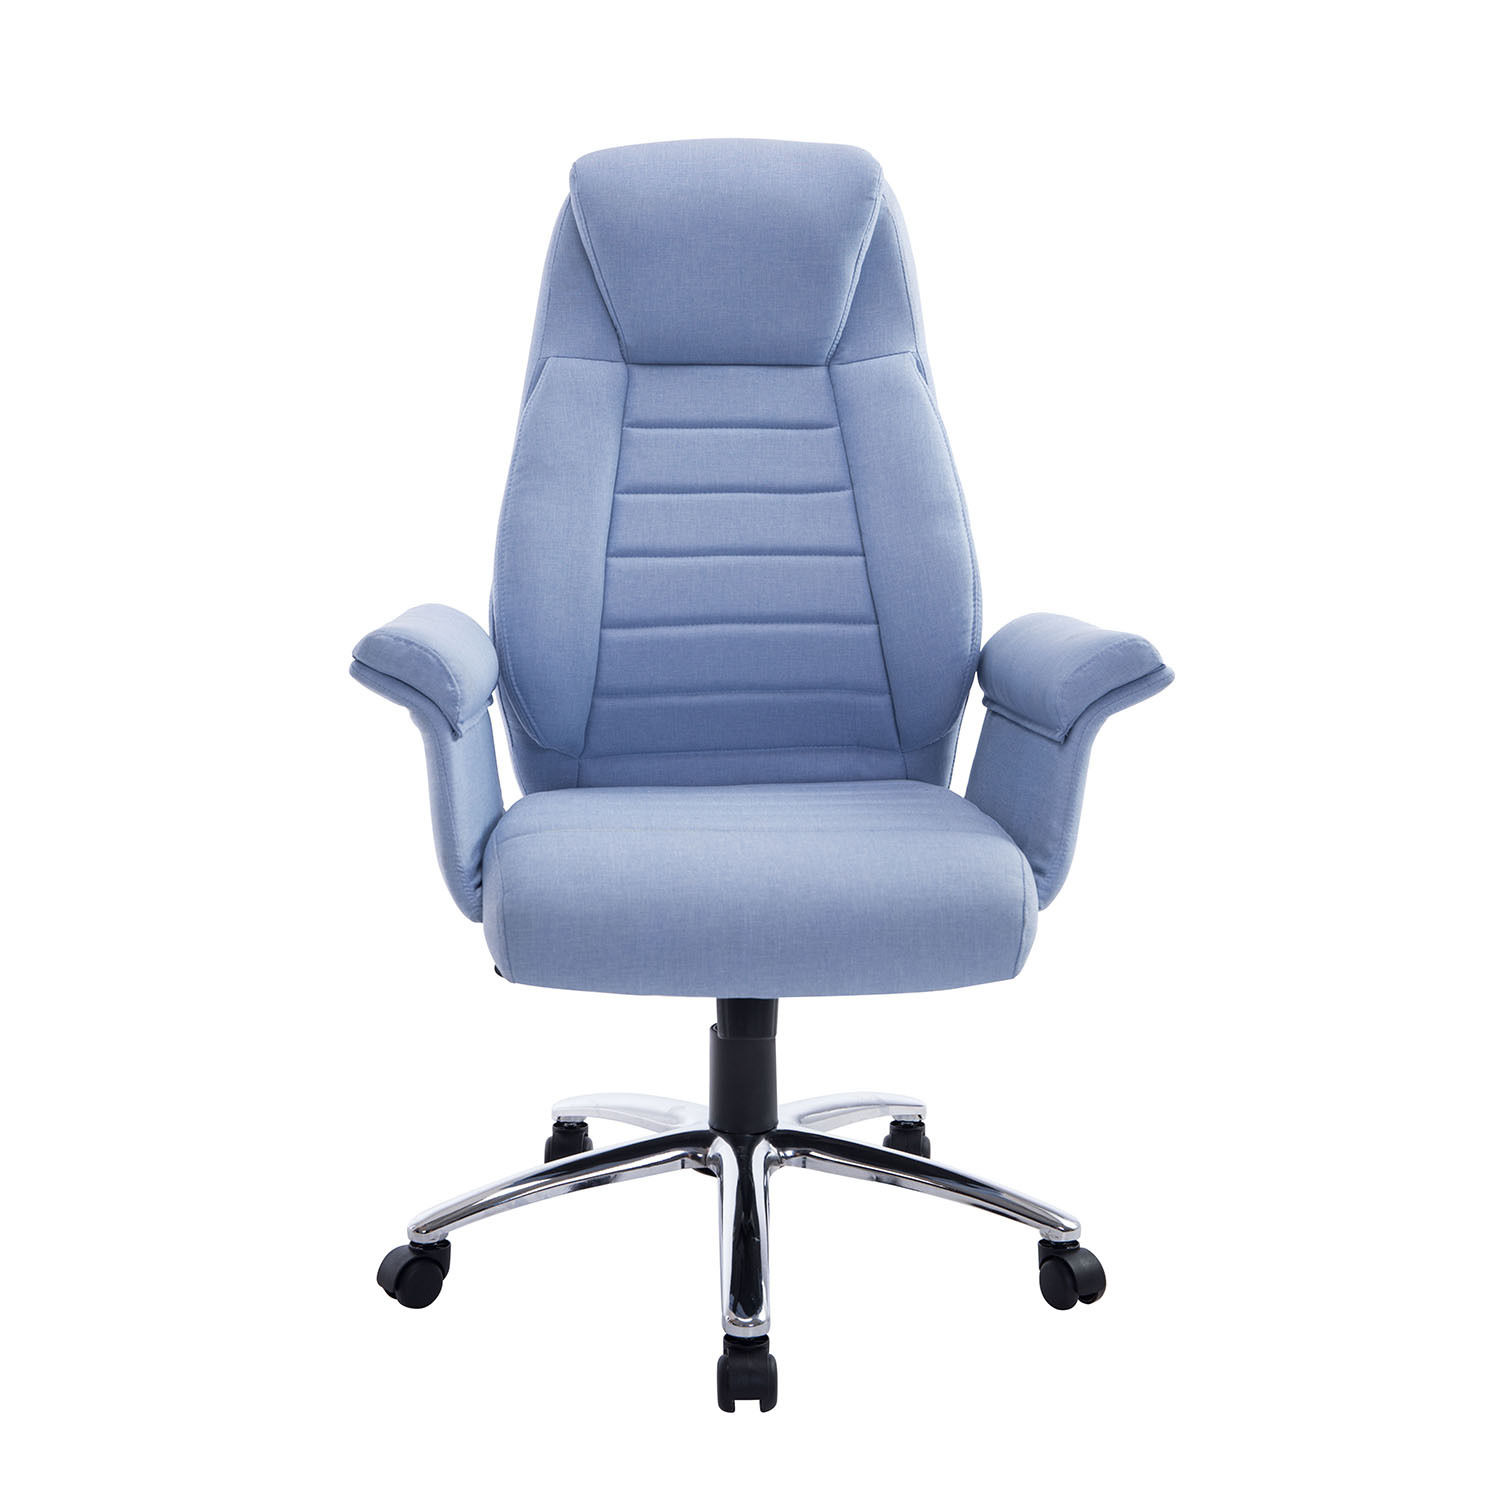 Rolling Executive Chair Office High Back Padded Swivel Computer Seat Ergonomic  eBay